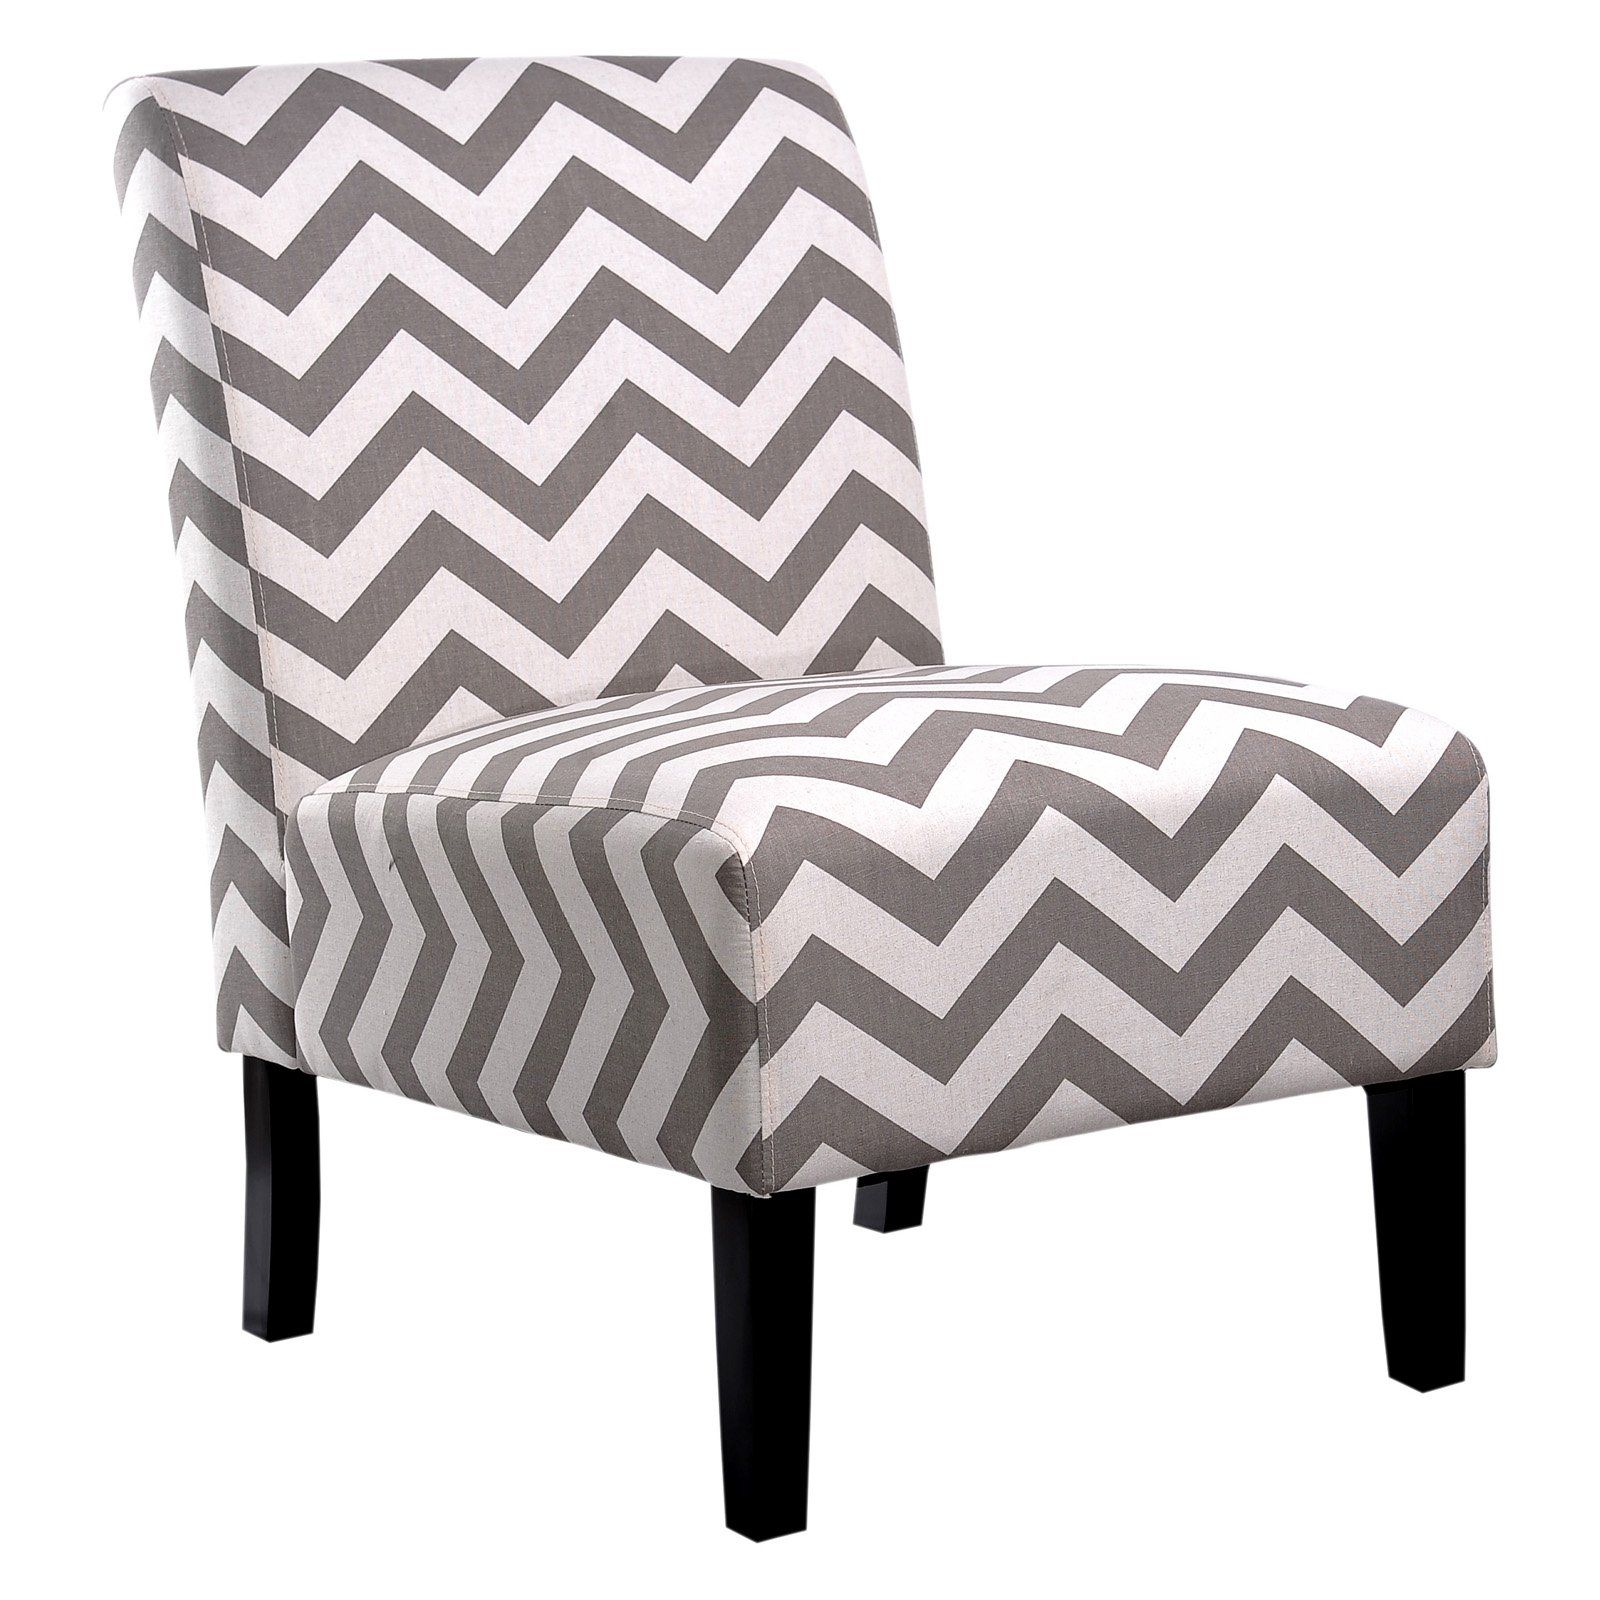 Miraculous Nh Designs Chevron Accent Chair In 2019 Products Accent Ocoug Best Dining Table And Chair Ideas Images Ocougorg